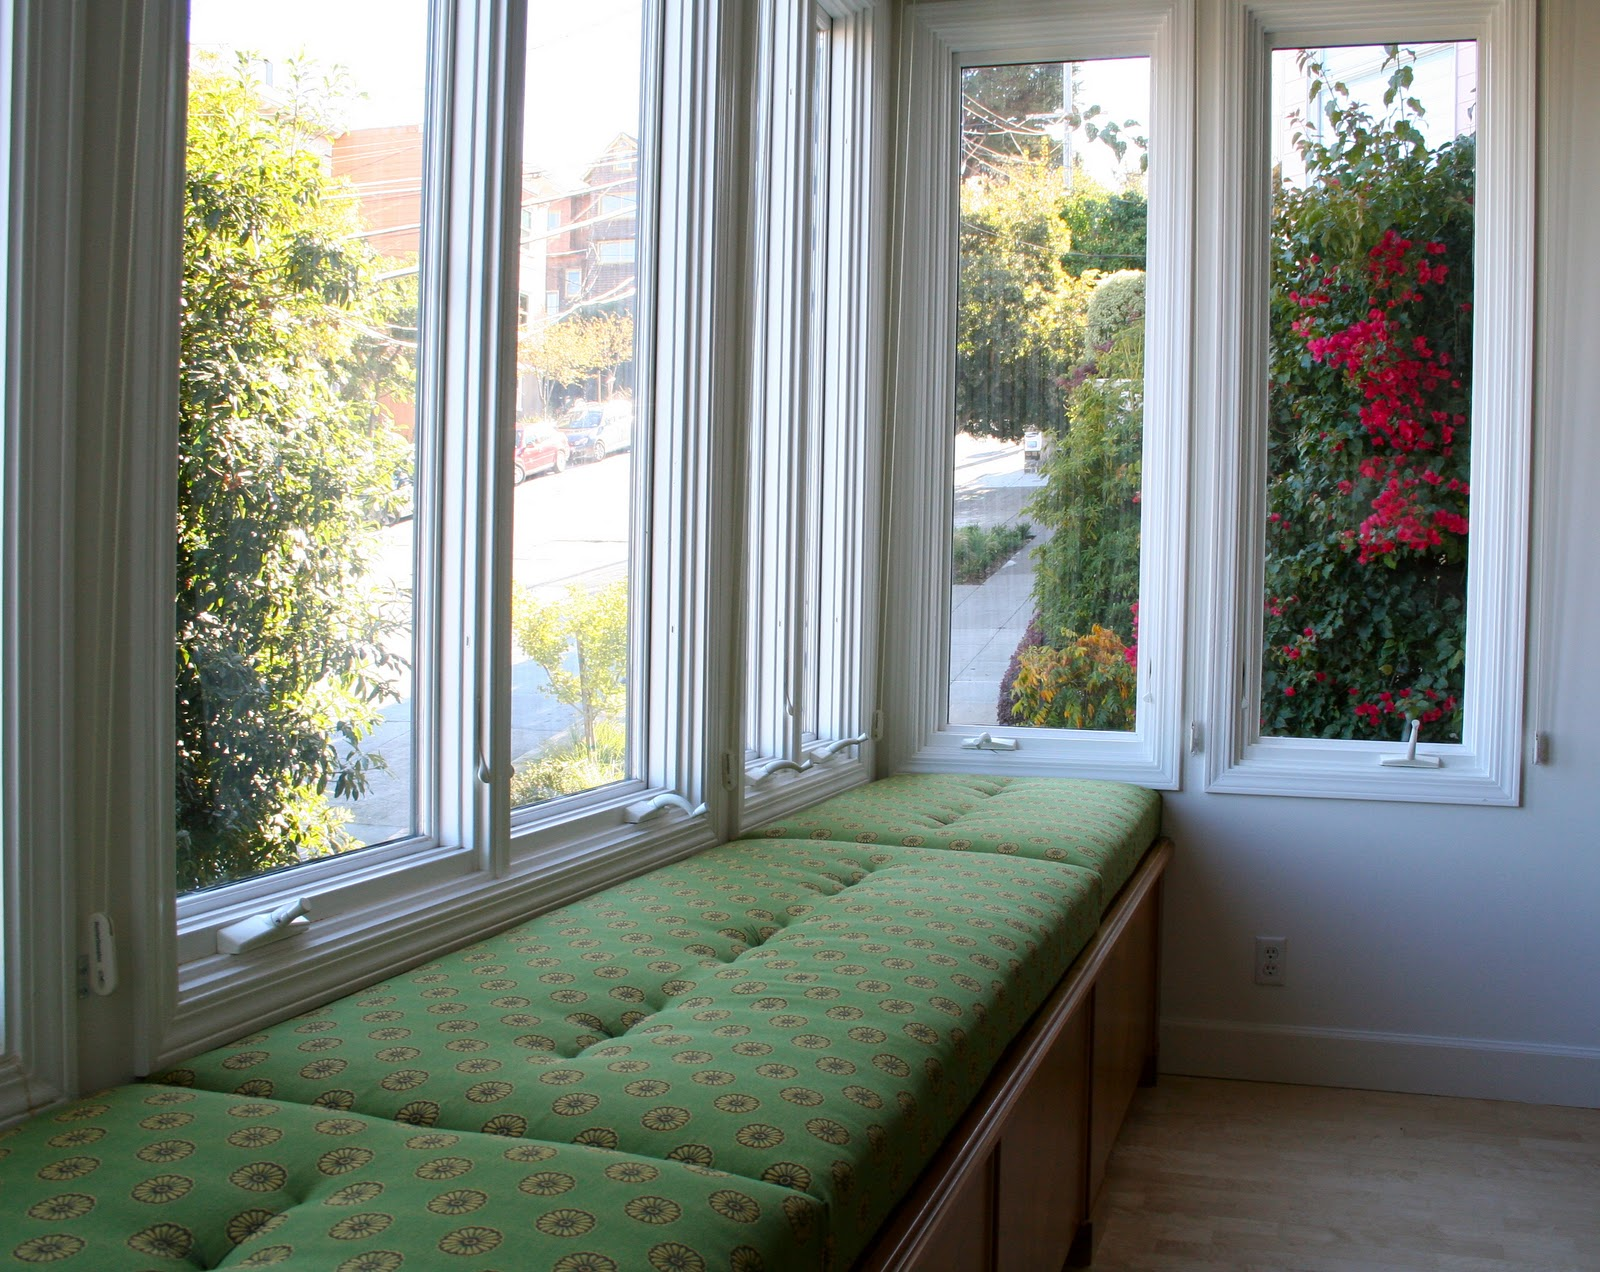 NOHR Interior Design: Window Seat Custom Cushions